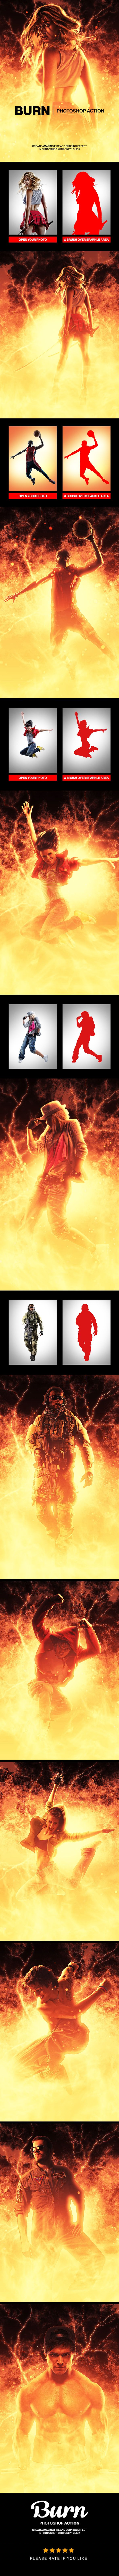 Burn Photoshop Action  #inspiration #abstract #tutorial • Download ➝ https://graphicriver.net/item/burn-photoshop-action/18604329?ref=pxcr